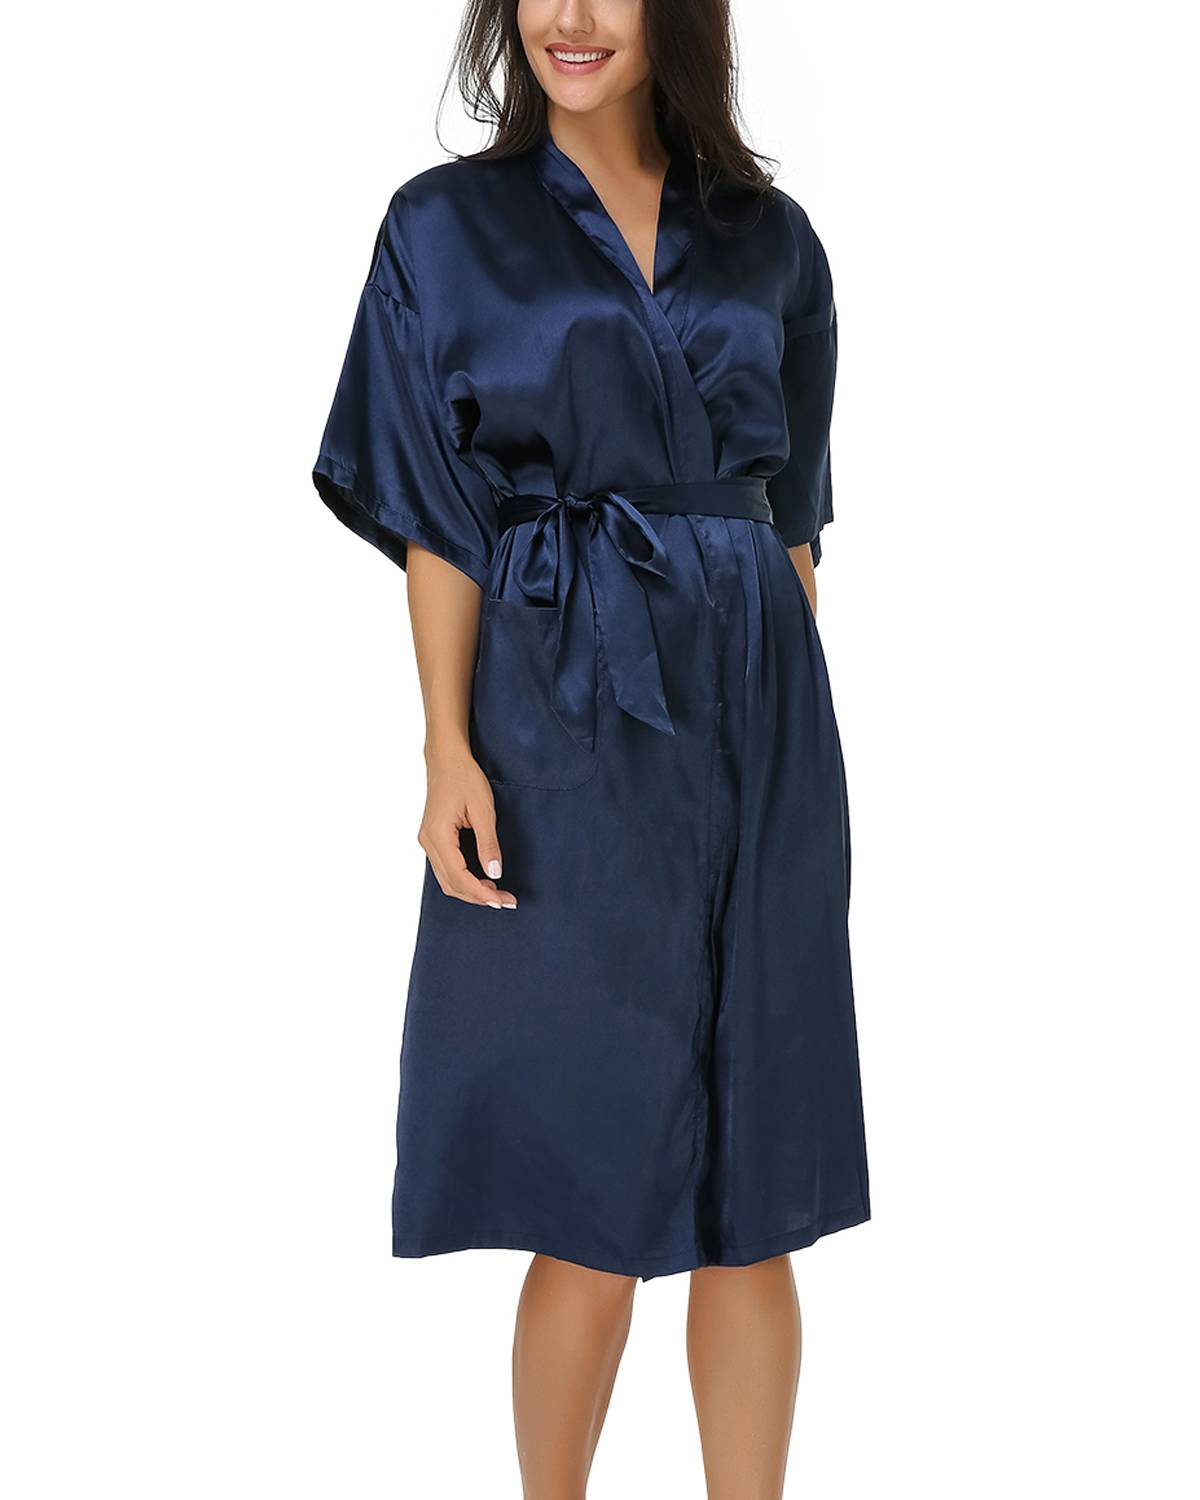 Plus Size Silk Sleepshirts Women 2019 Summer Casual Loose Sexy V-Neck Half Sleeve Mid-Calf Pockets Nightgowns Solid Belt Lounge